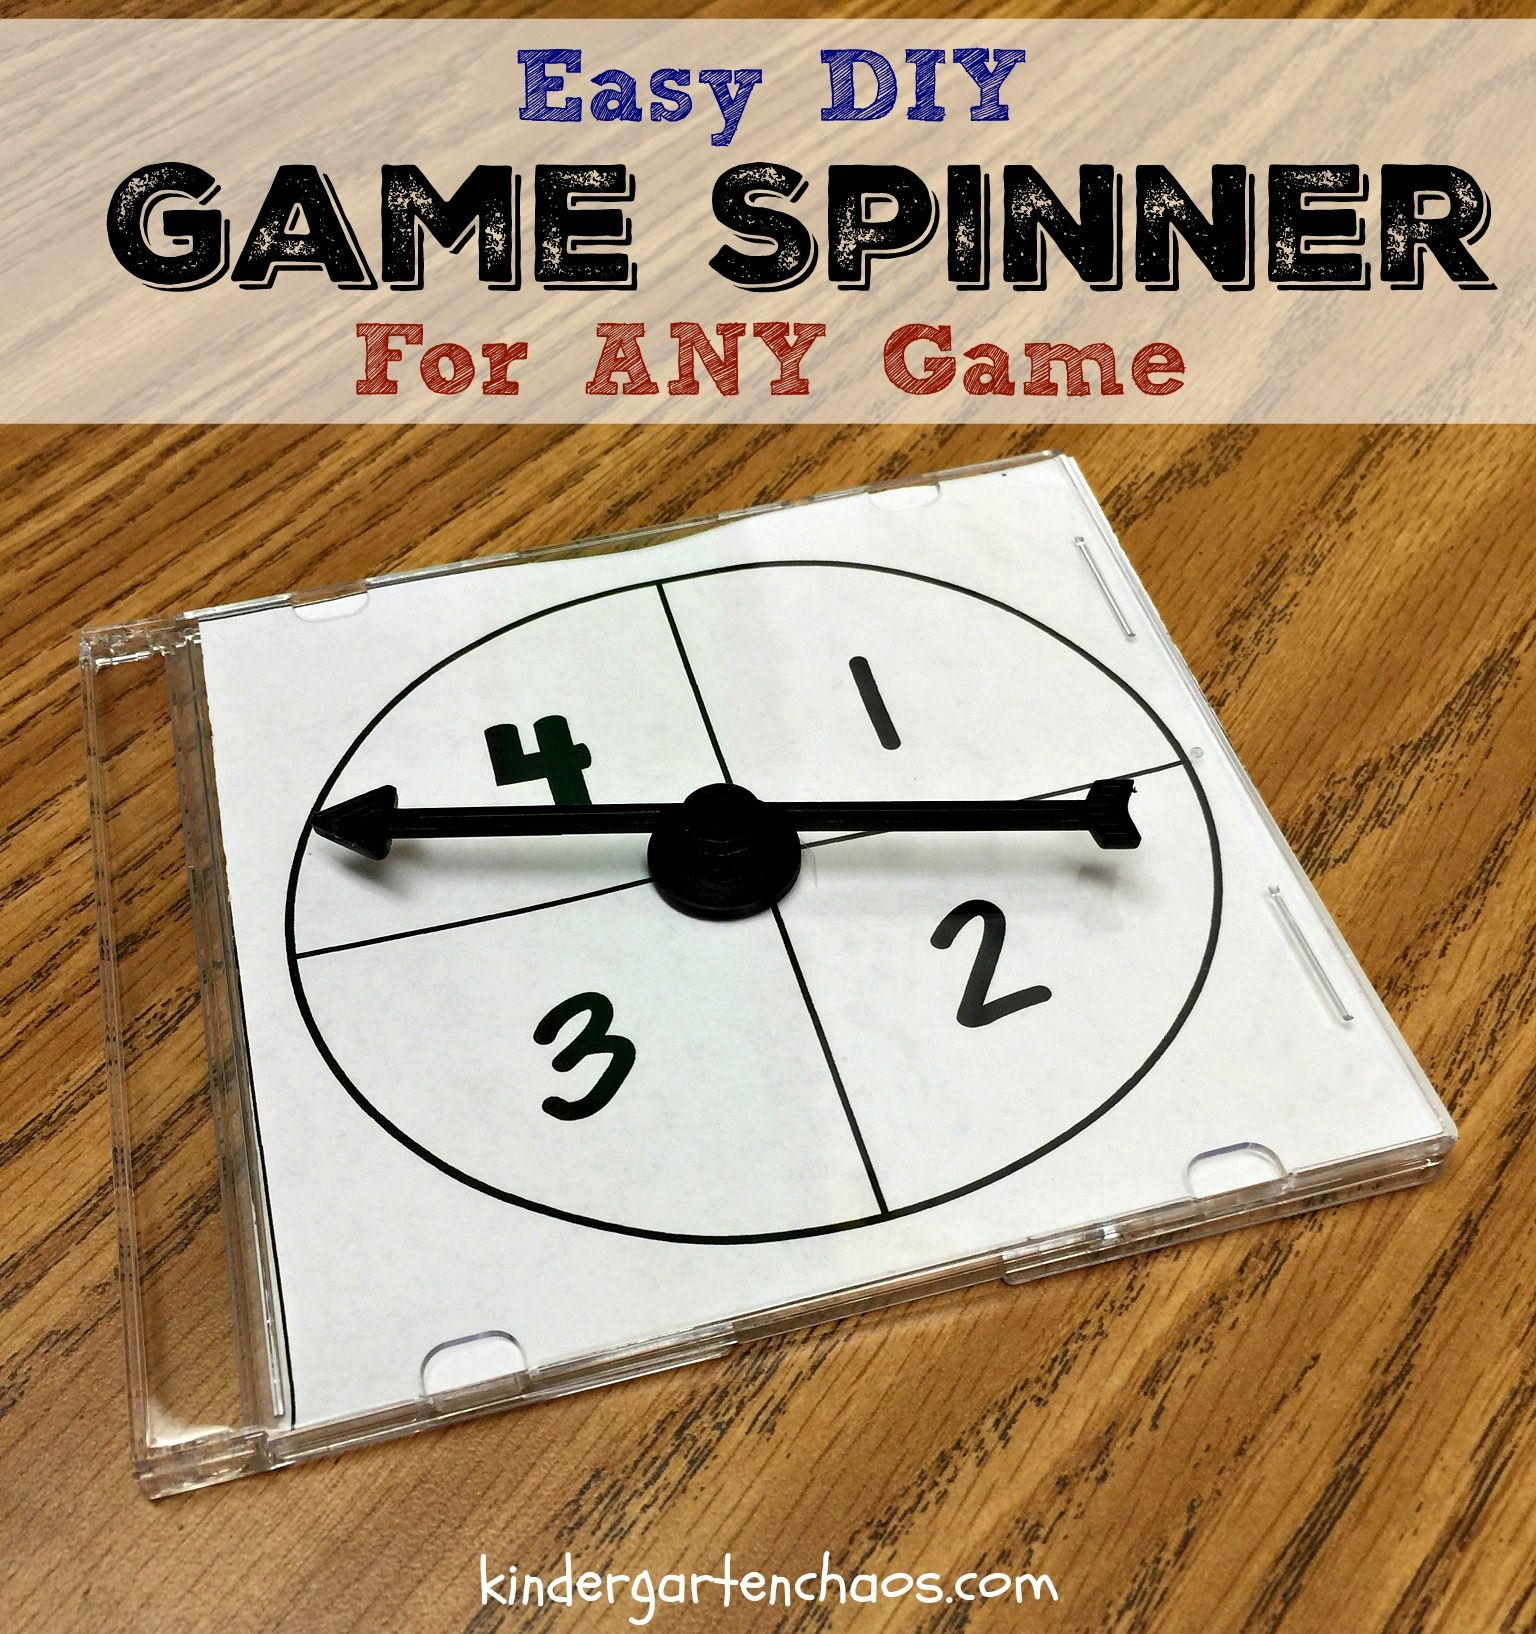 Make Your Own Interchangeable Game Spinner For The